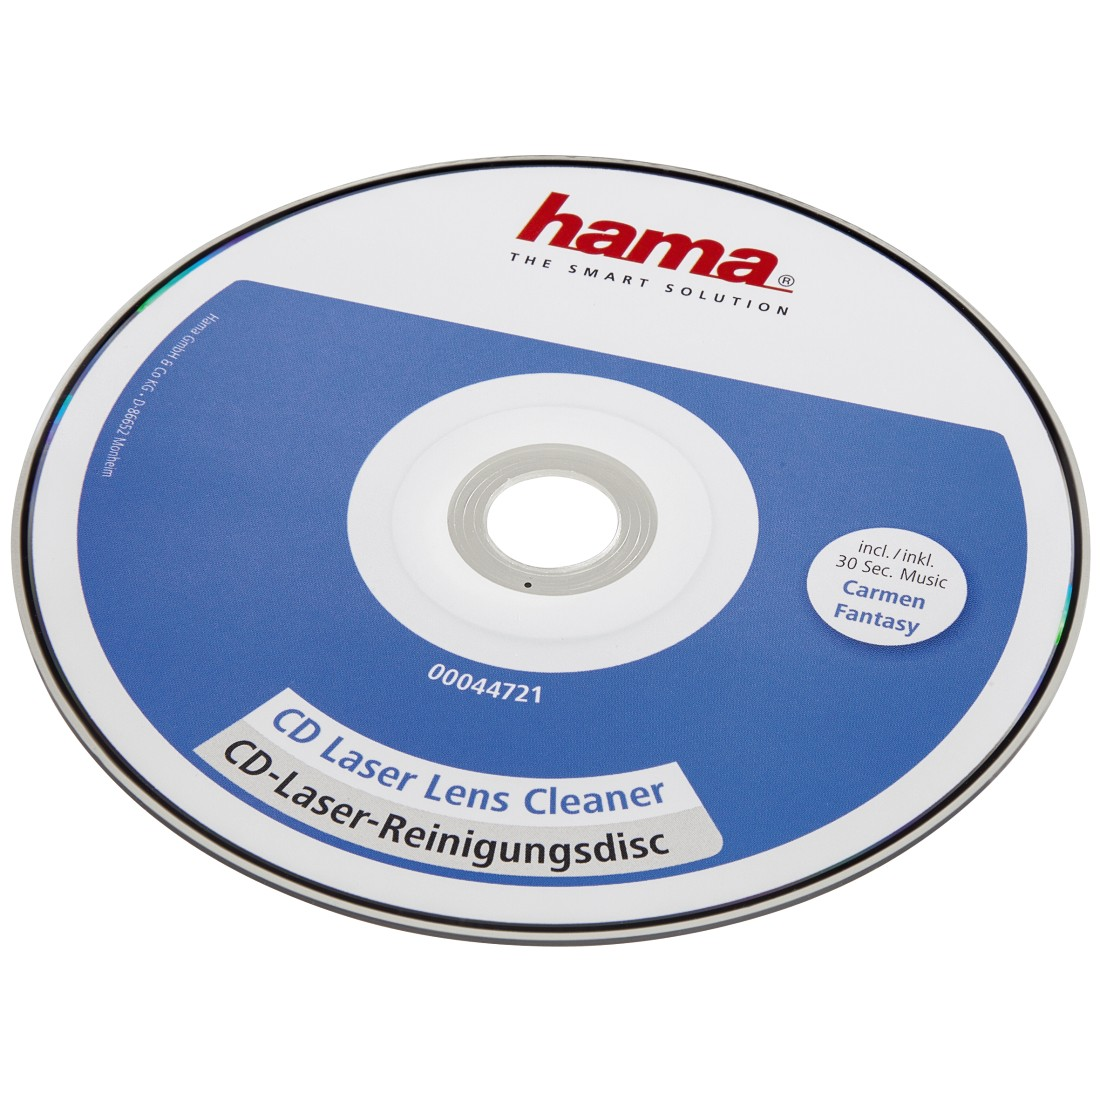 abx2 High-Res Image 2 - Hama, CD Laser Lens Cleaner